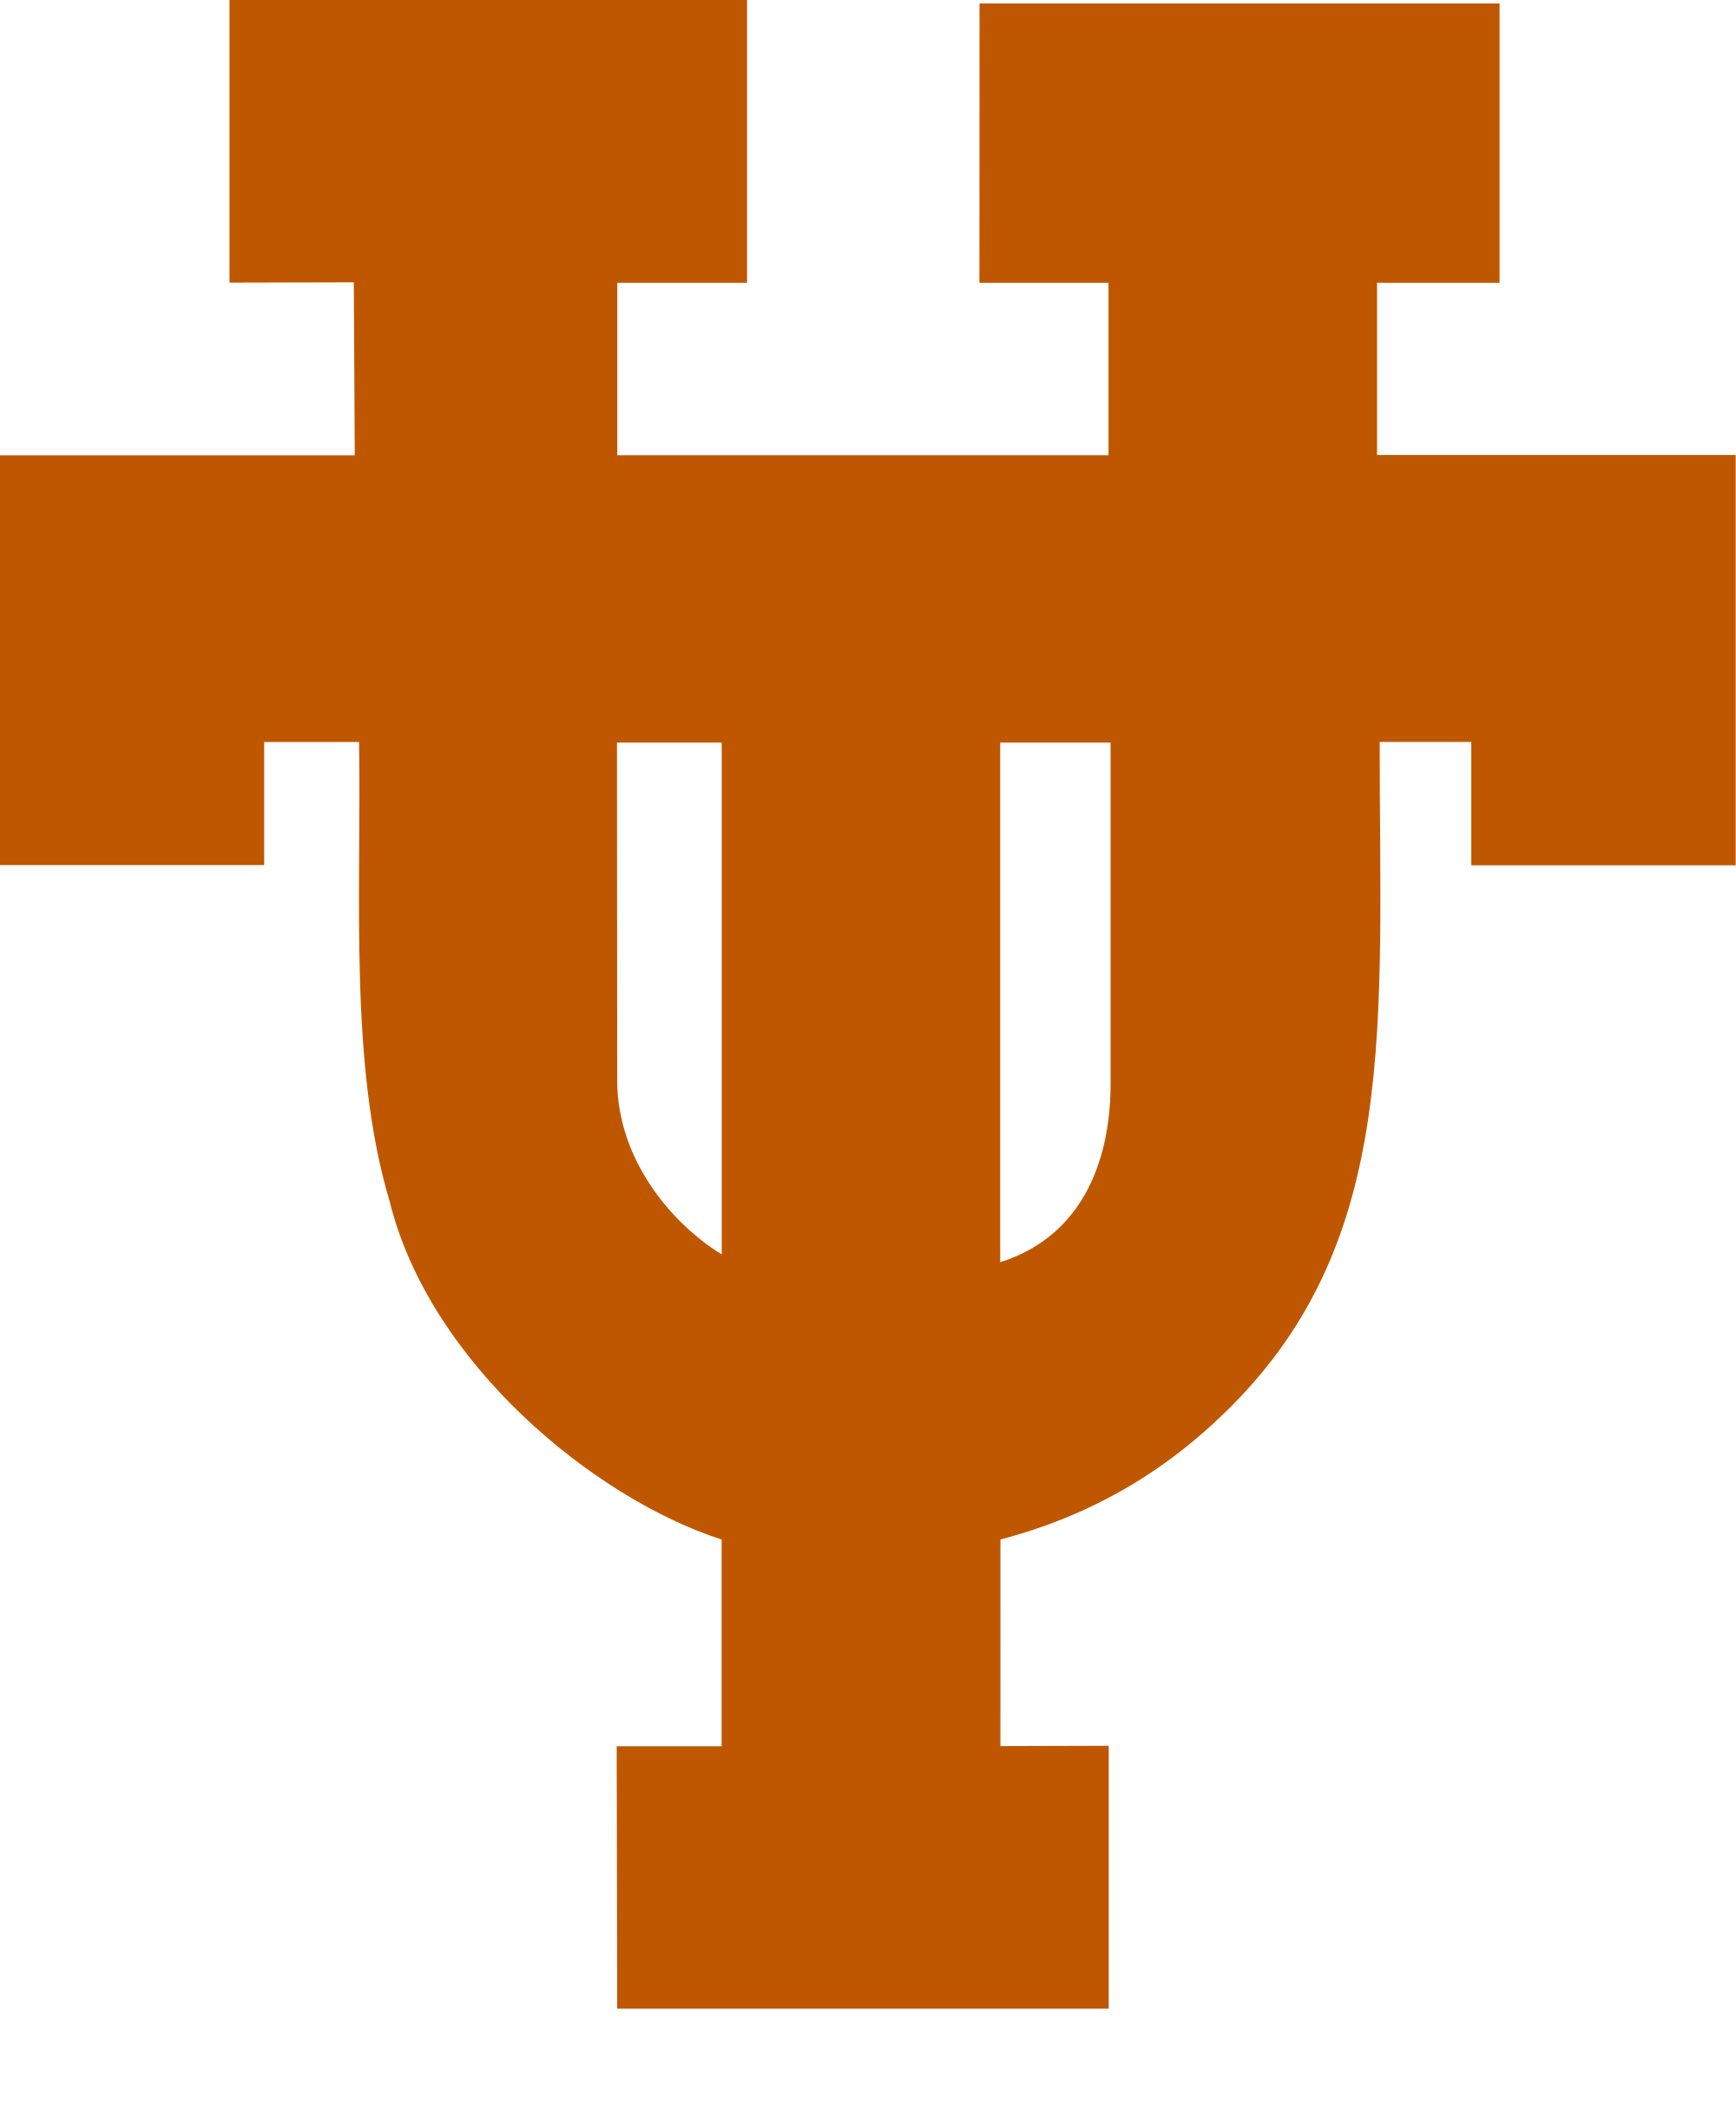 Texas logo png. File ut t text